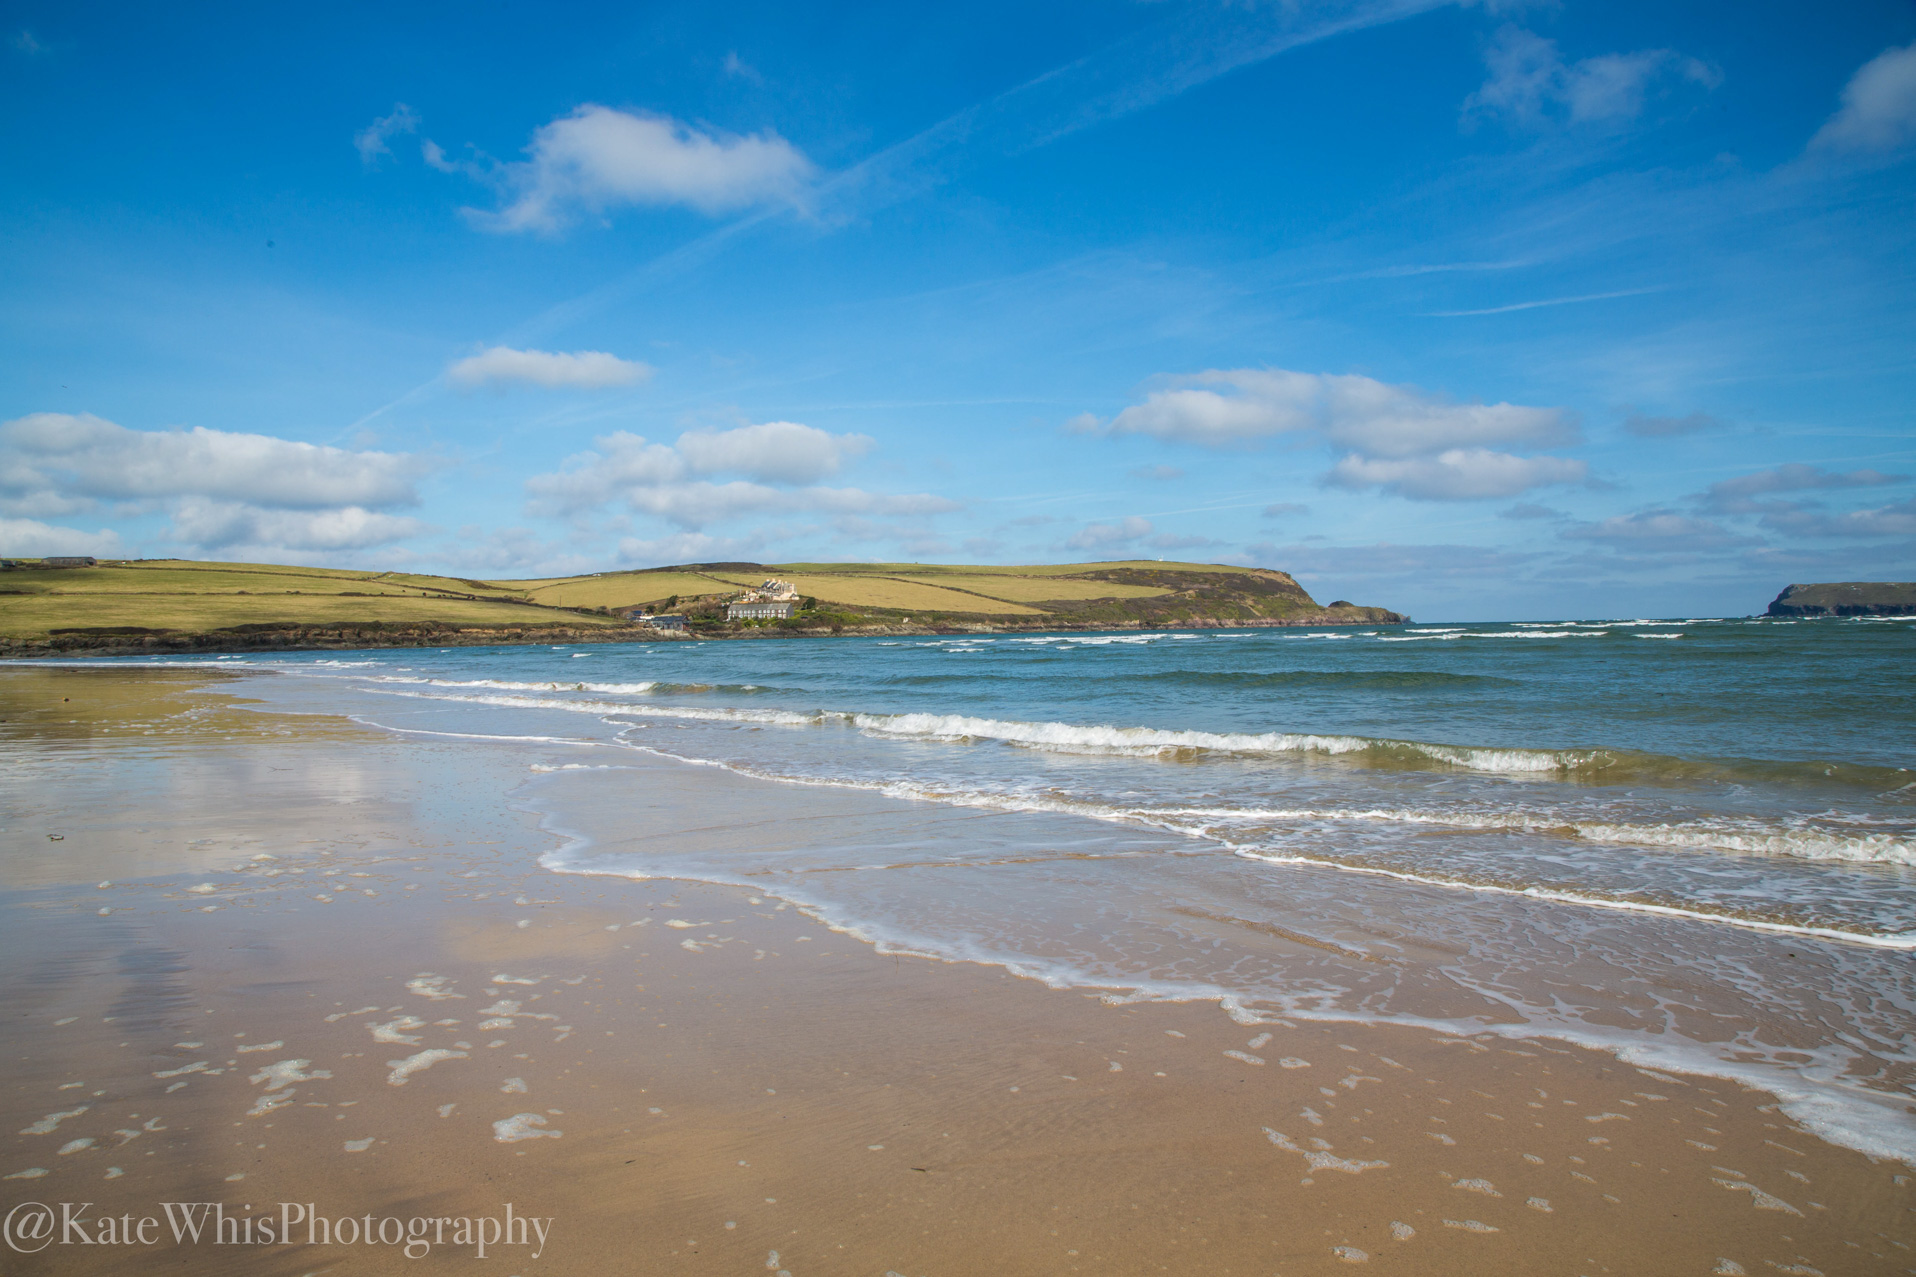 View looking over Tregirls beach, Cornwall